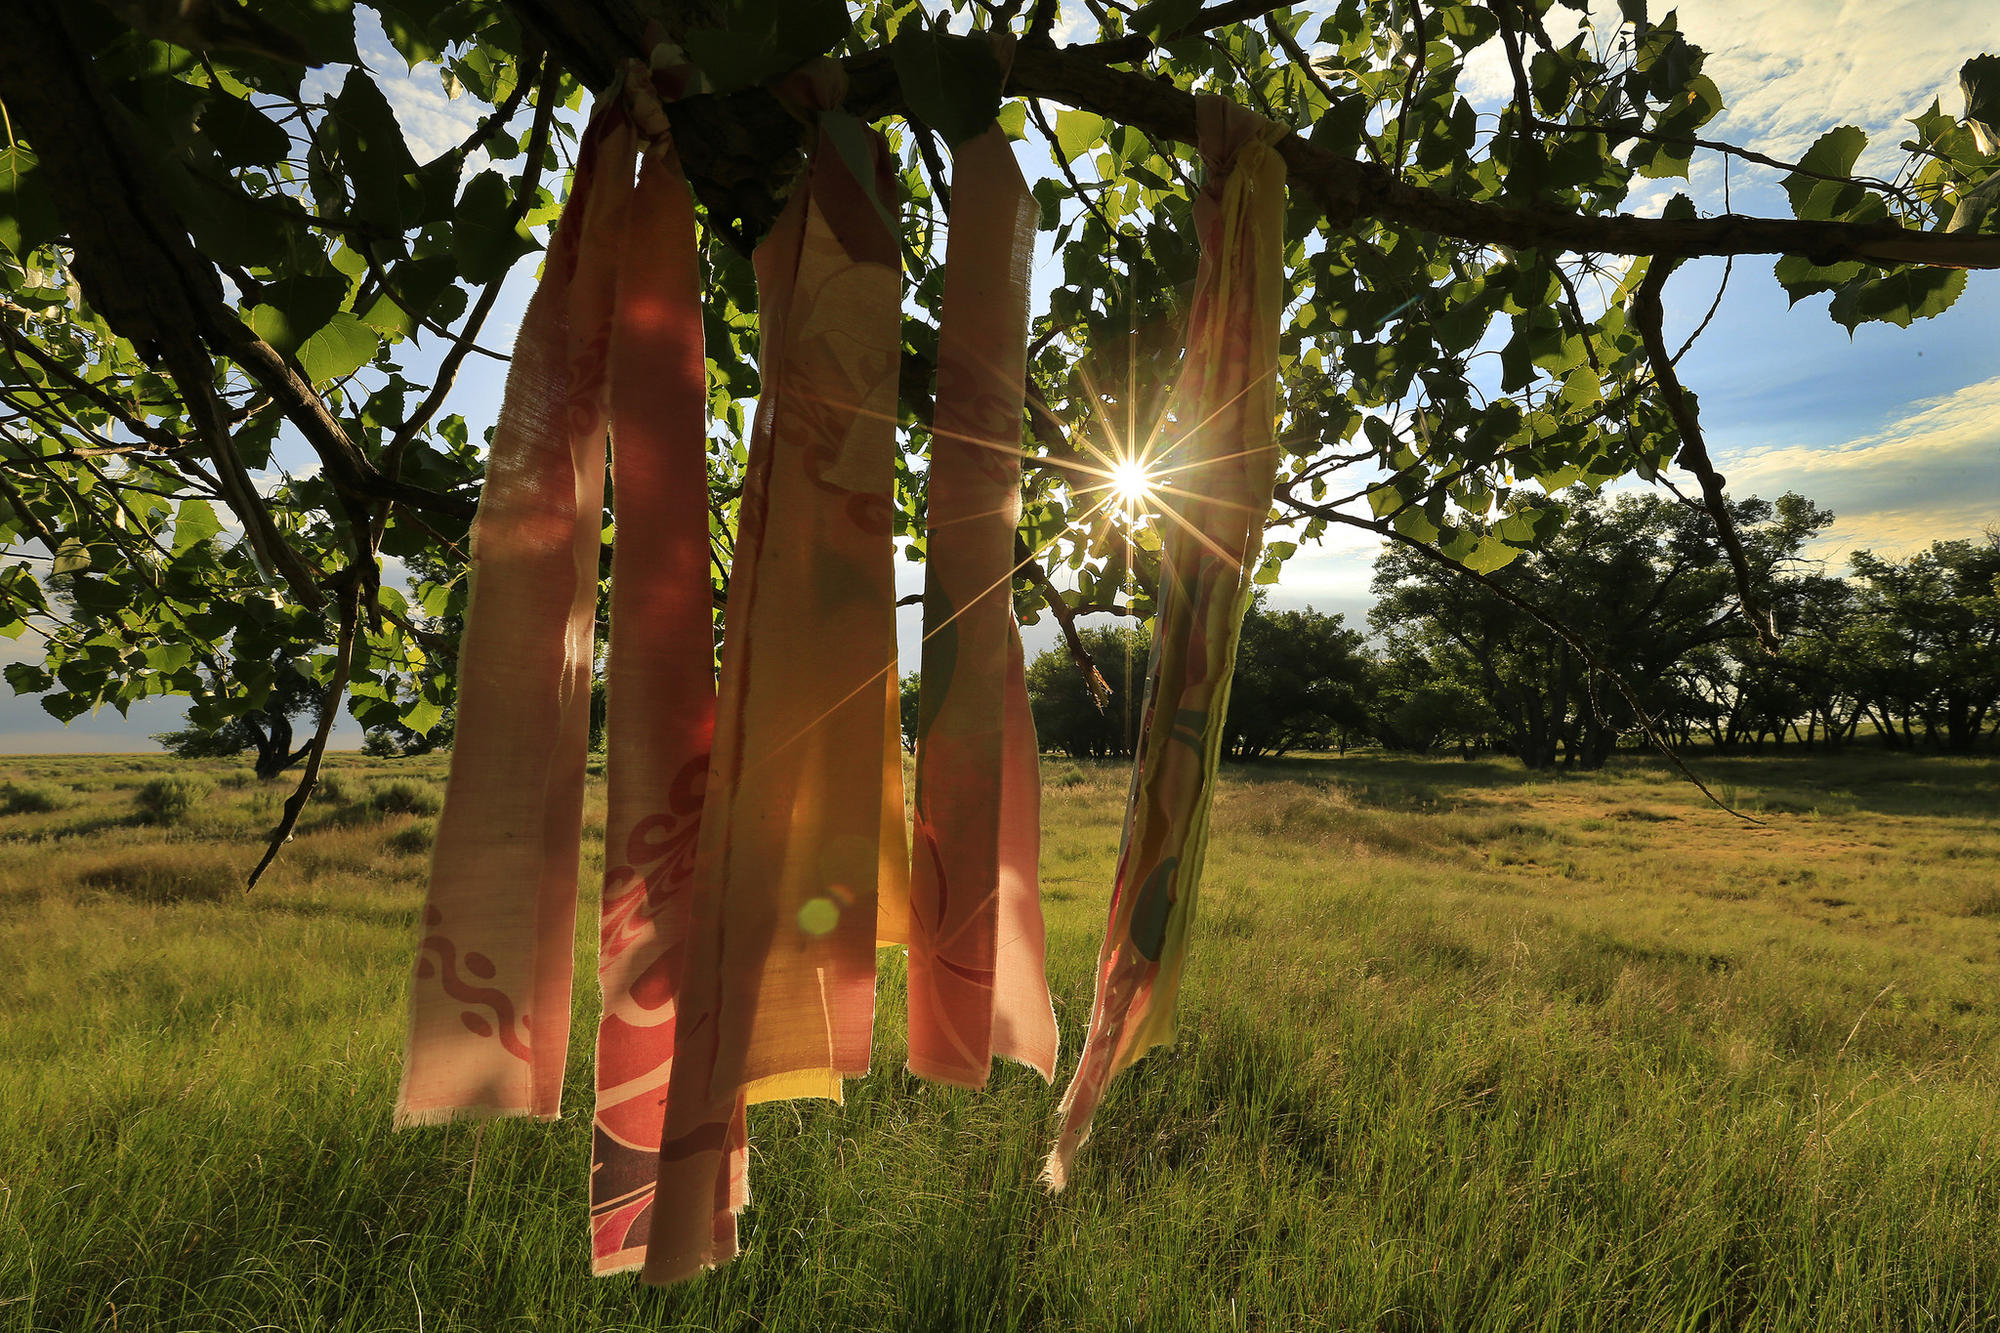 Native American prayer flags hang from a tree in the area where the massacre was perpetrated.